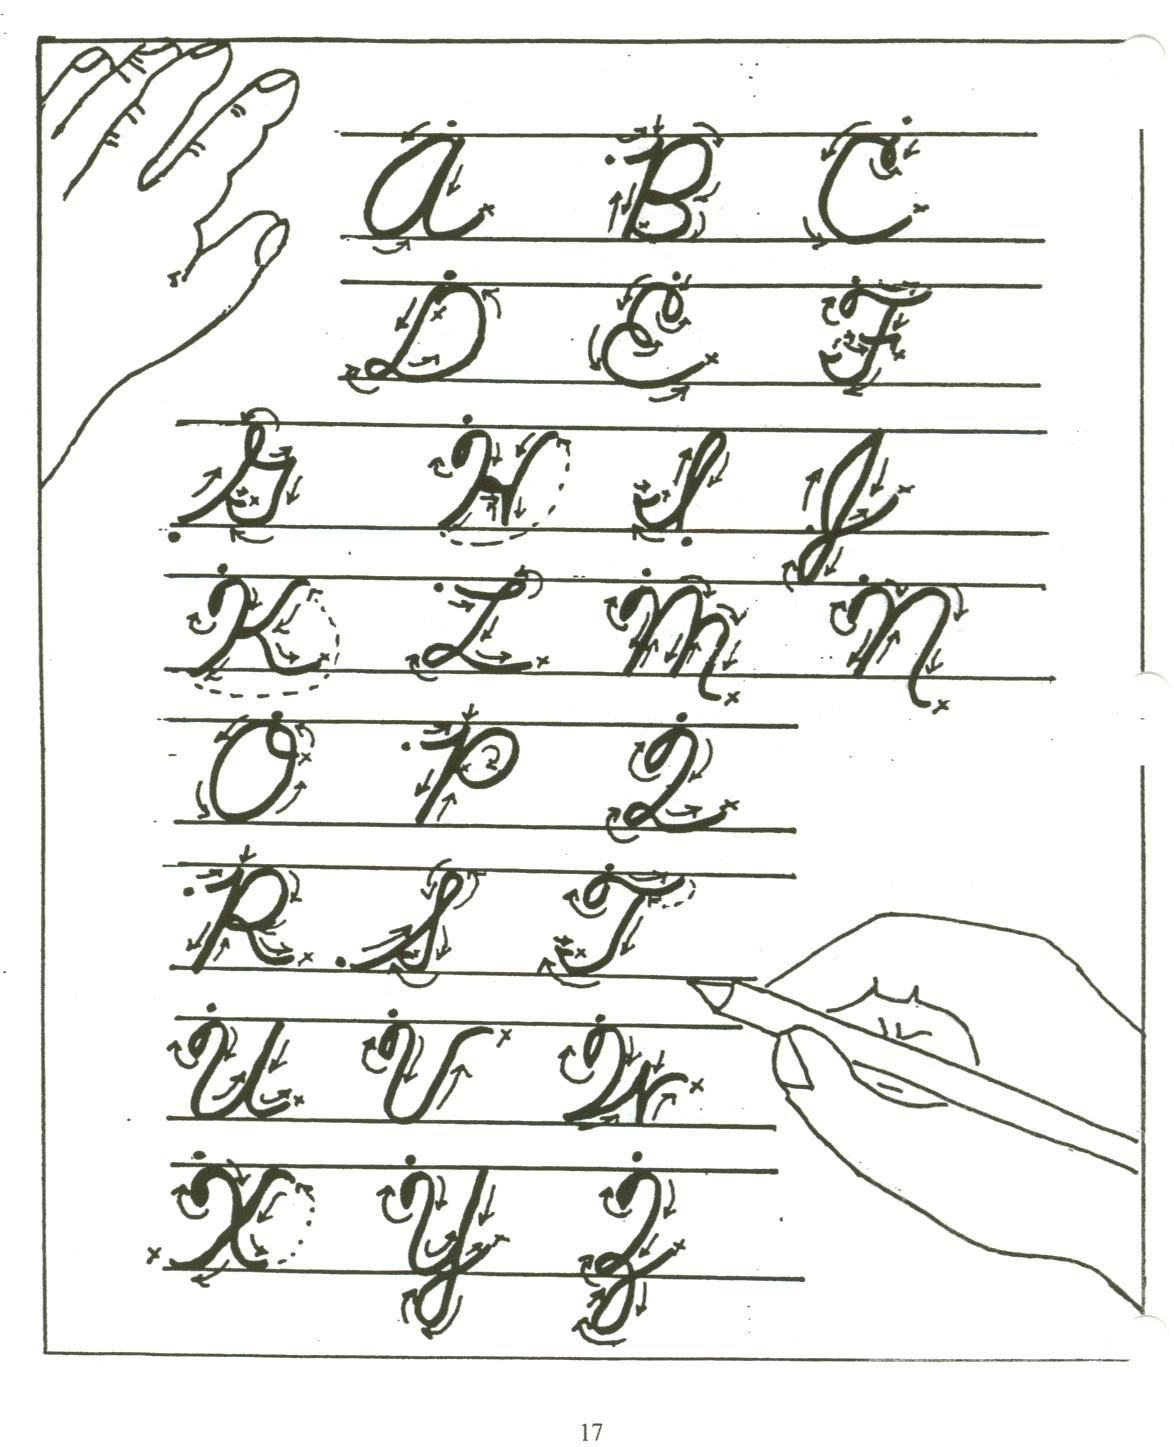 How to write cursive letters, Essay Writing Service